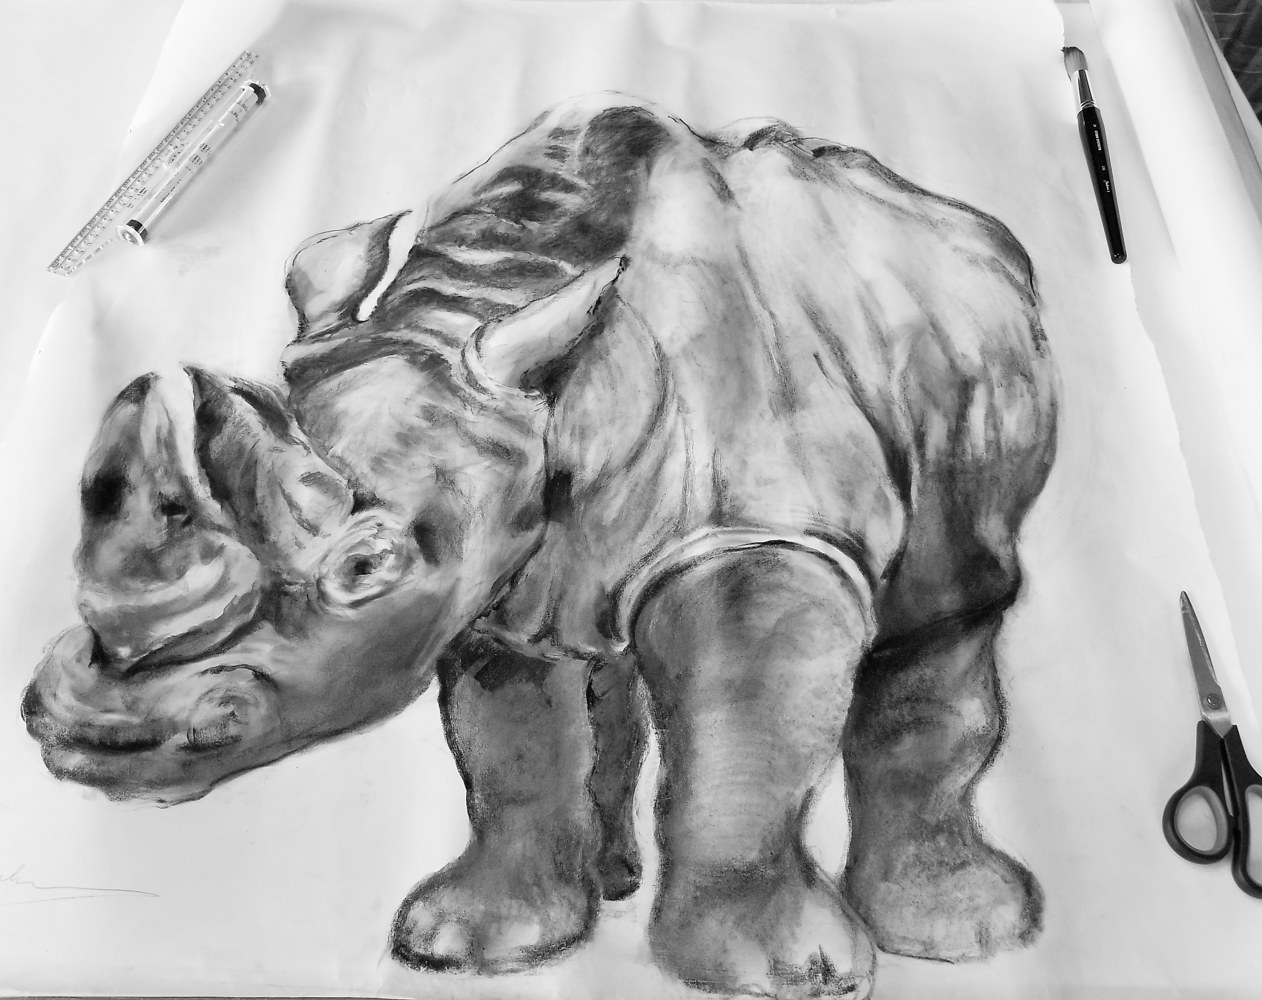 (c) 2020 Lully Schwartz 'R is for Rhino' Graphite on Vellum 36 x 36 inches by Lully Schwartz